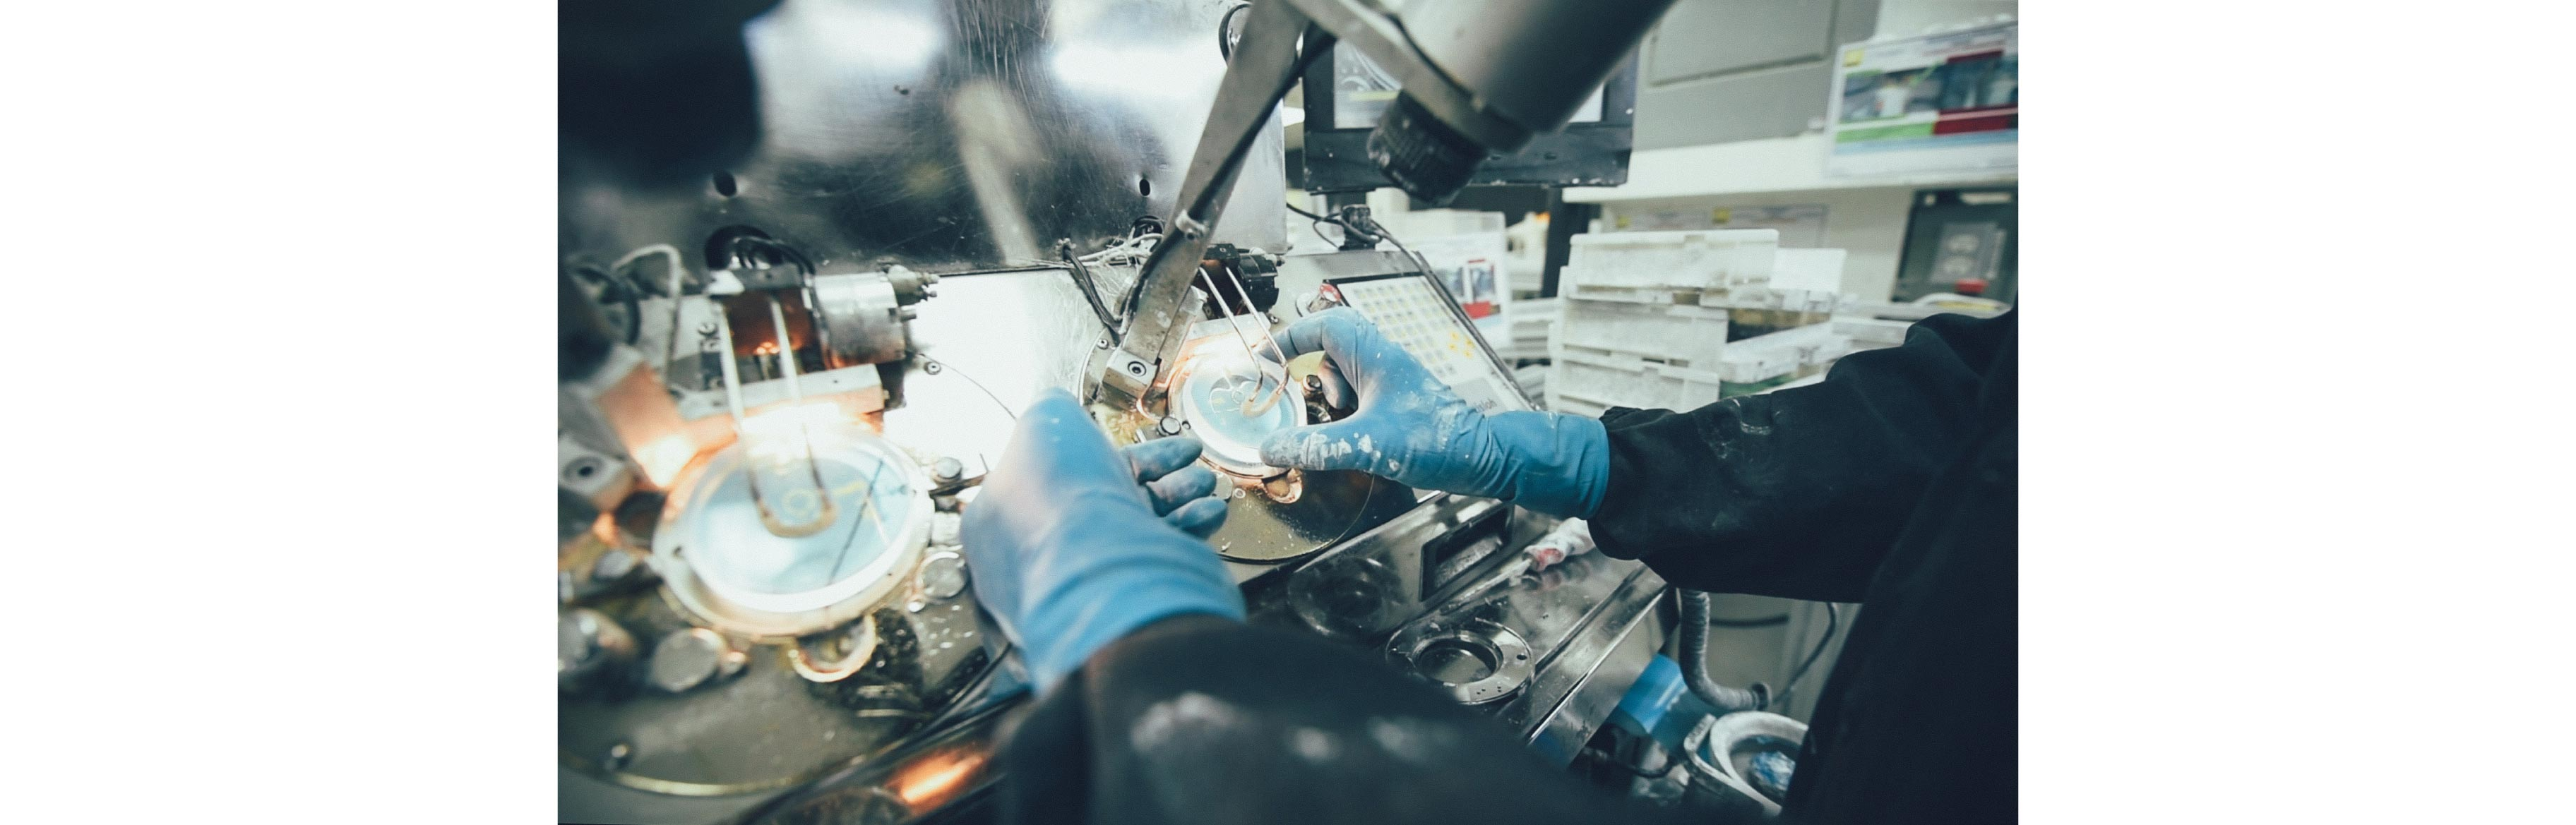 An employee wearing gloves is polishing round ophthalmic lenses using a machine